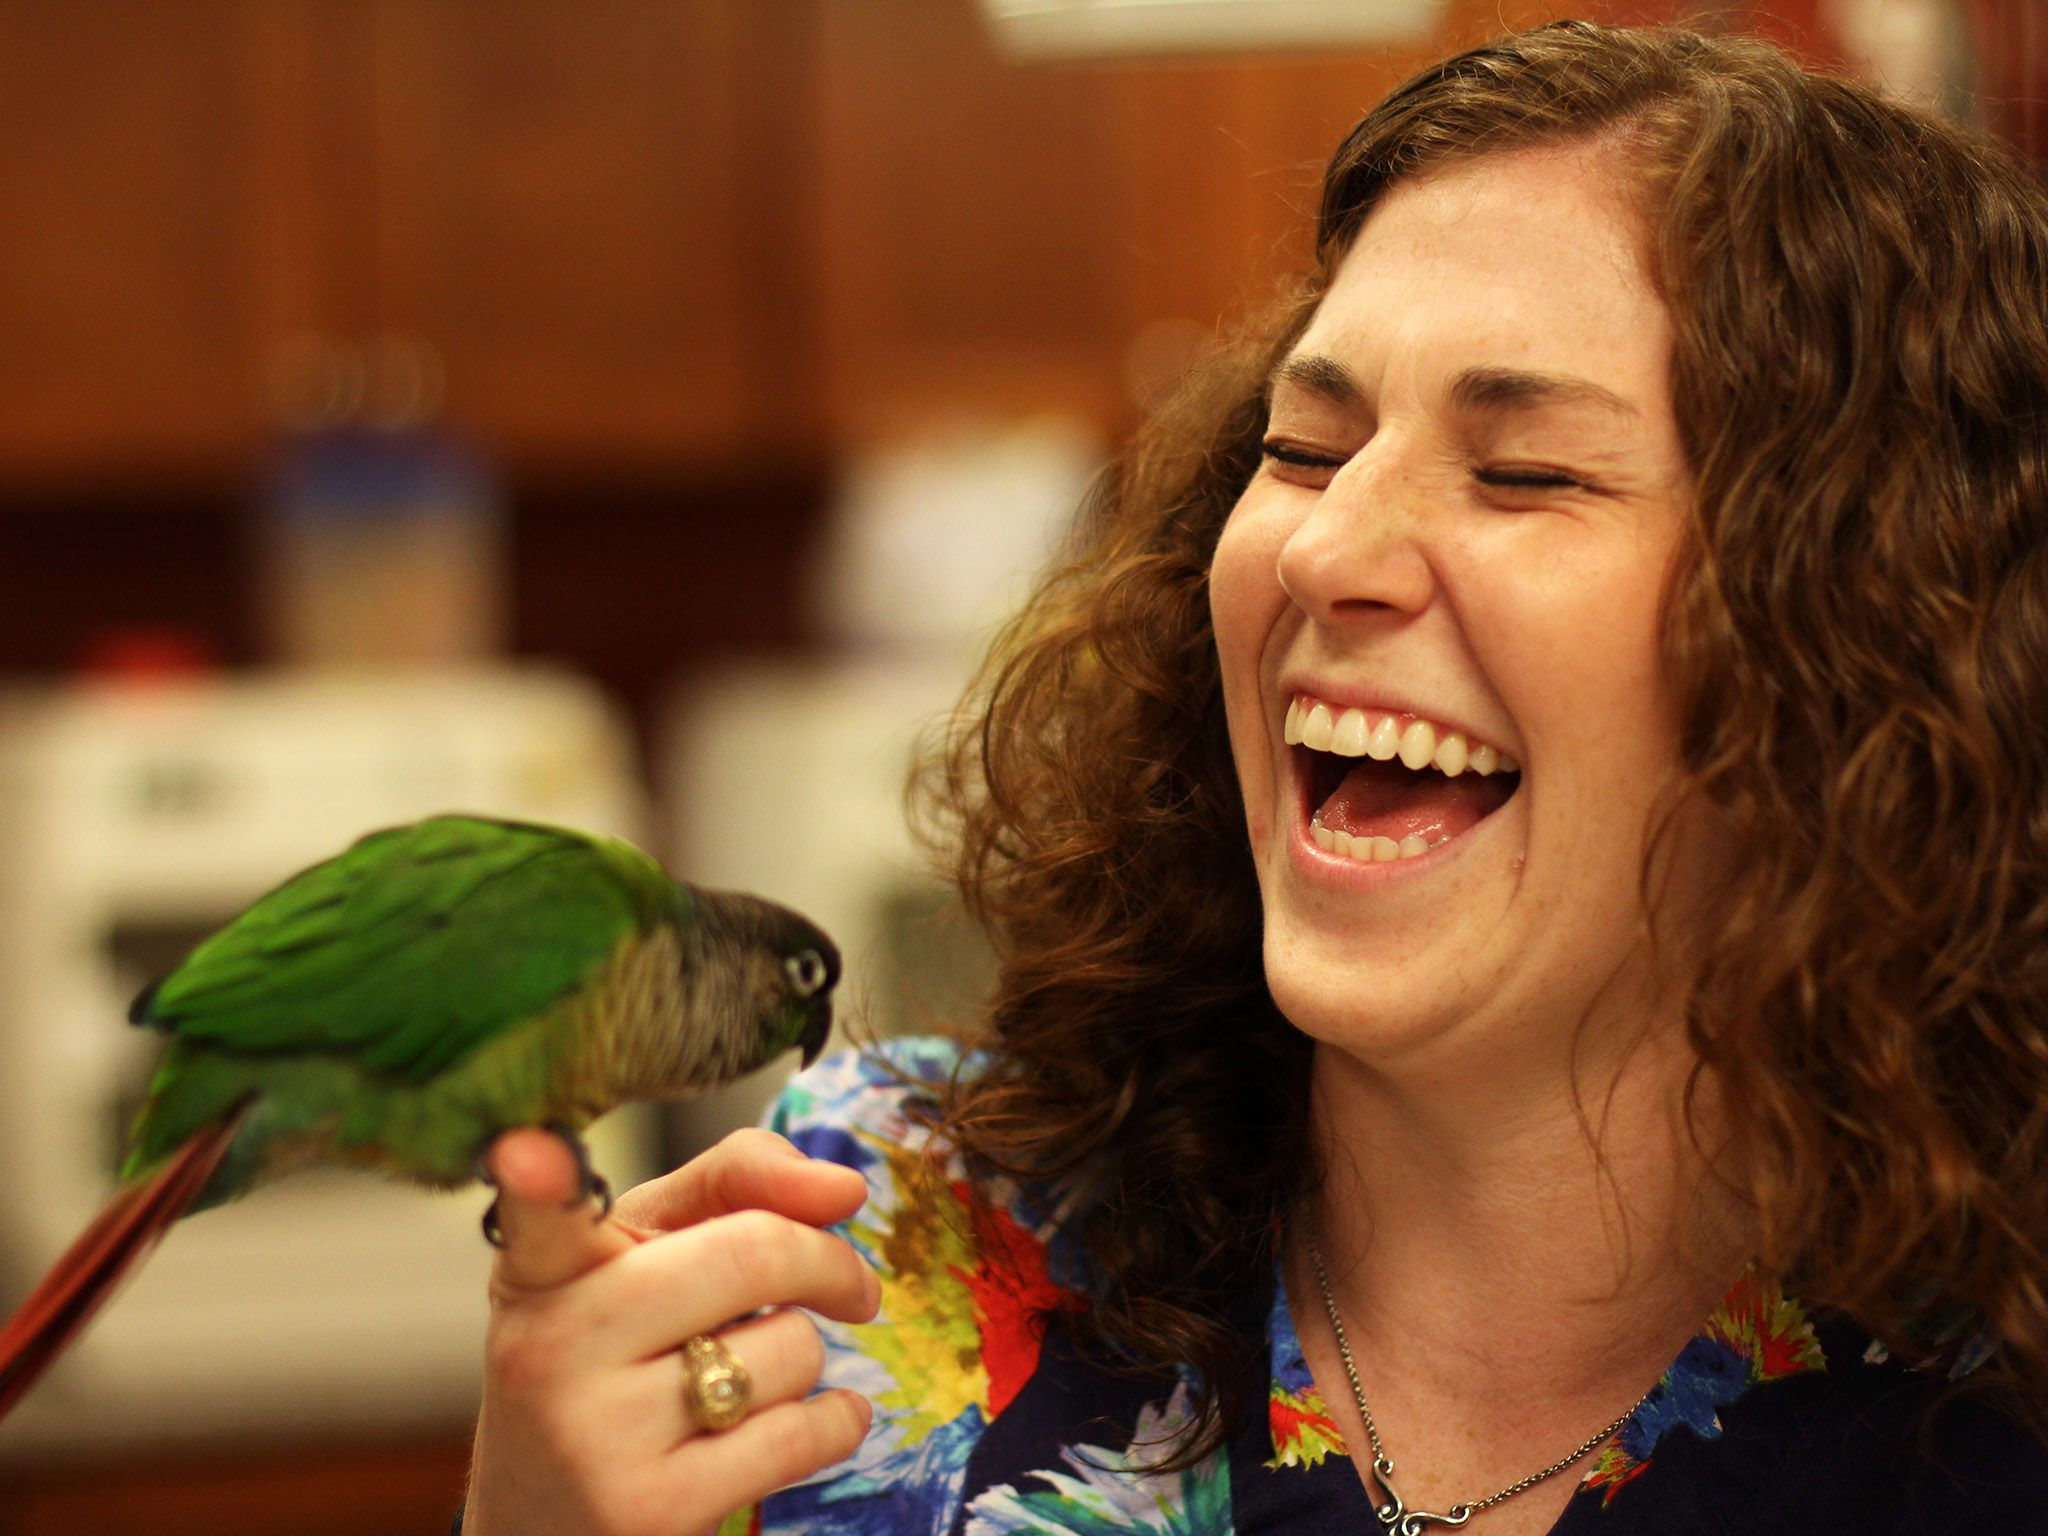 Dr. Lauren Thielen has always had an interest in exotic animals. She worked as a veterinary... [Photo of the day - October 2014]